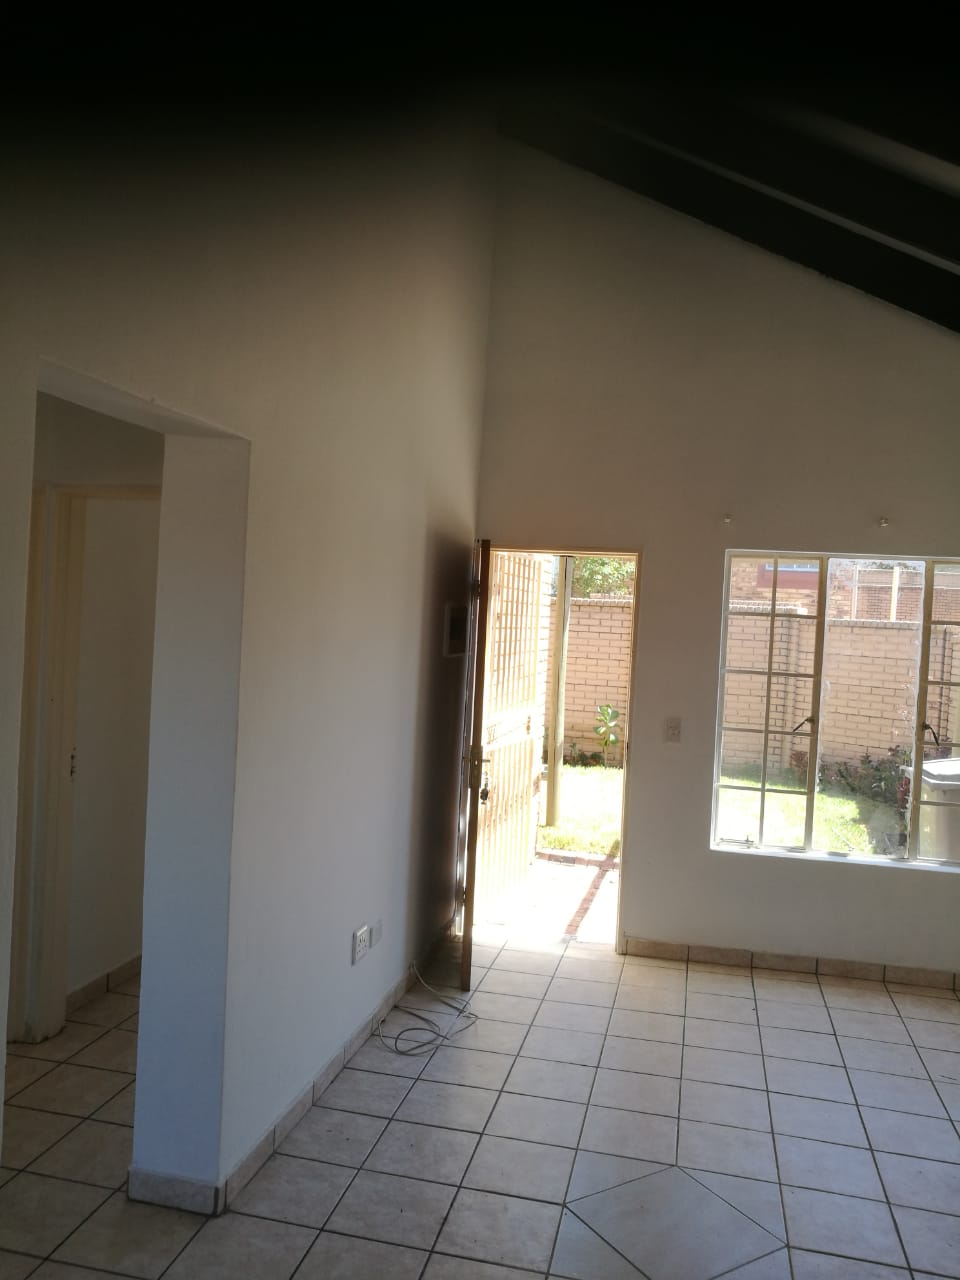 2 bedroom flat for rent in Midrand - newly renovated